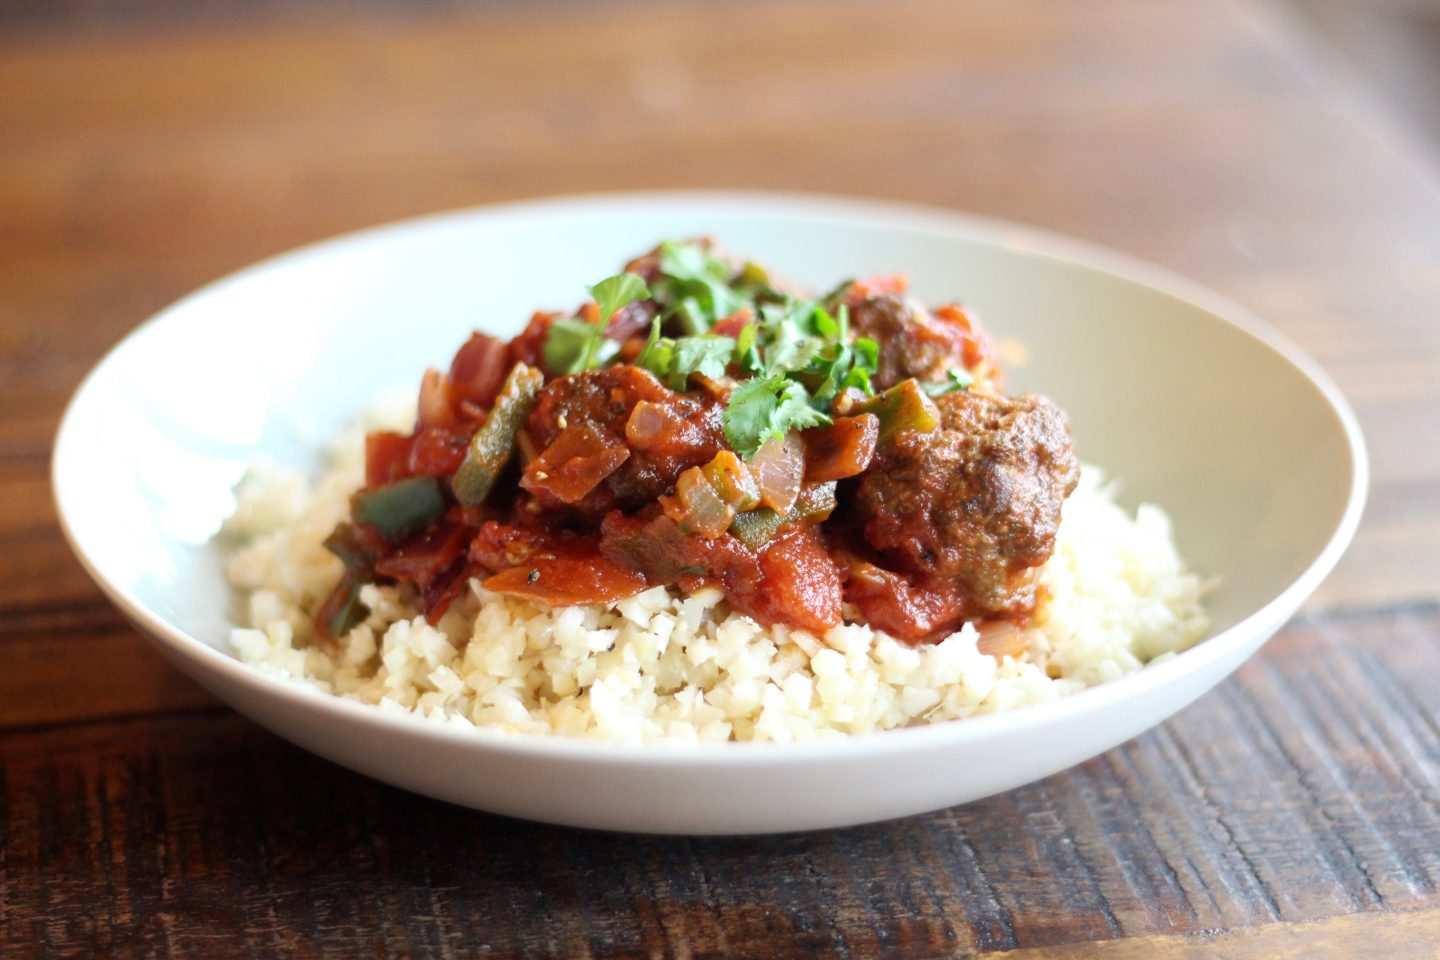 Two Healthy Lamb Recipes for Mid-Week